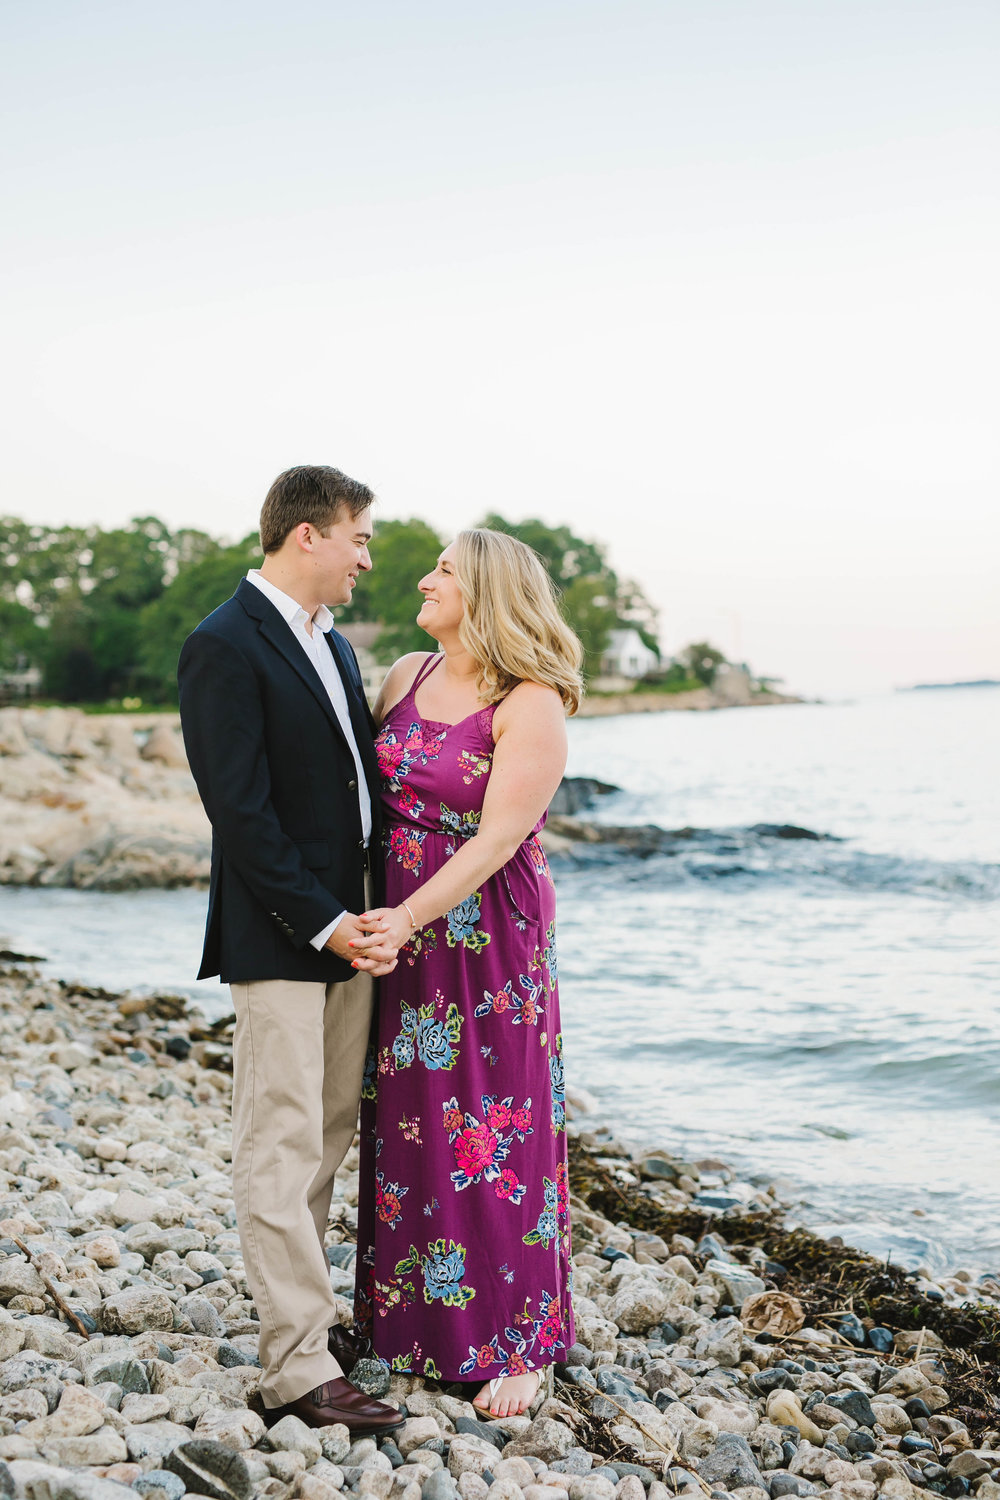 Beverly Lynch Park Rose Garden Engagement Session - Emily Tebbetts Photography-63.jpg